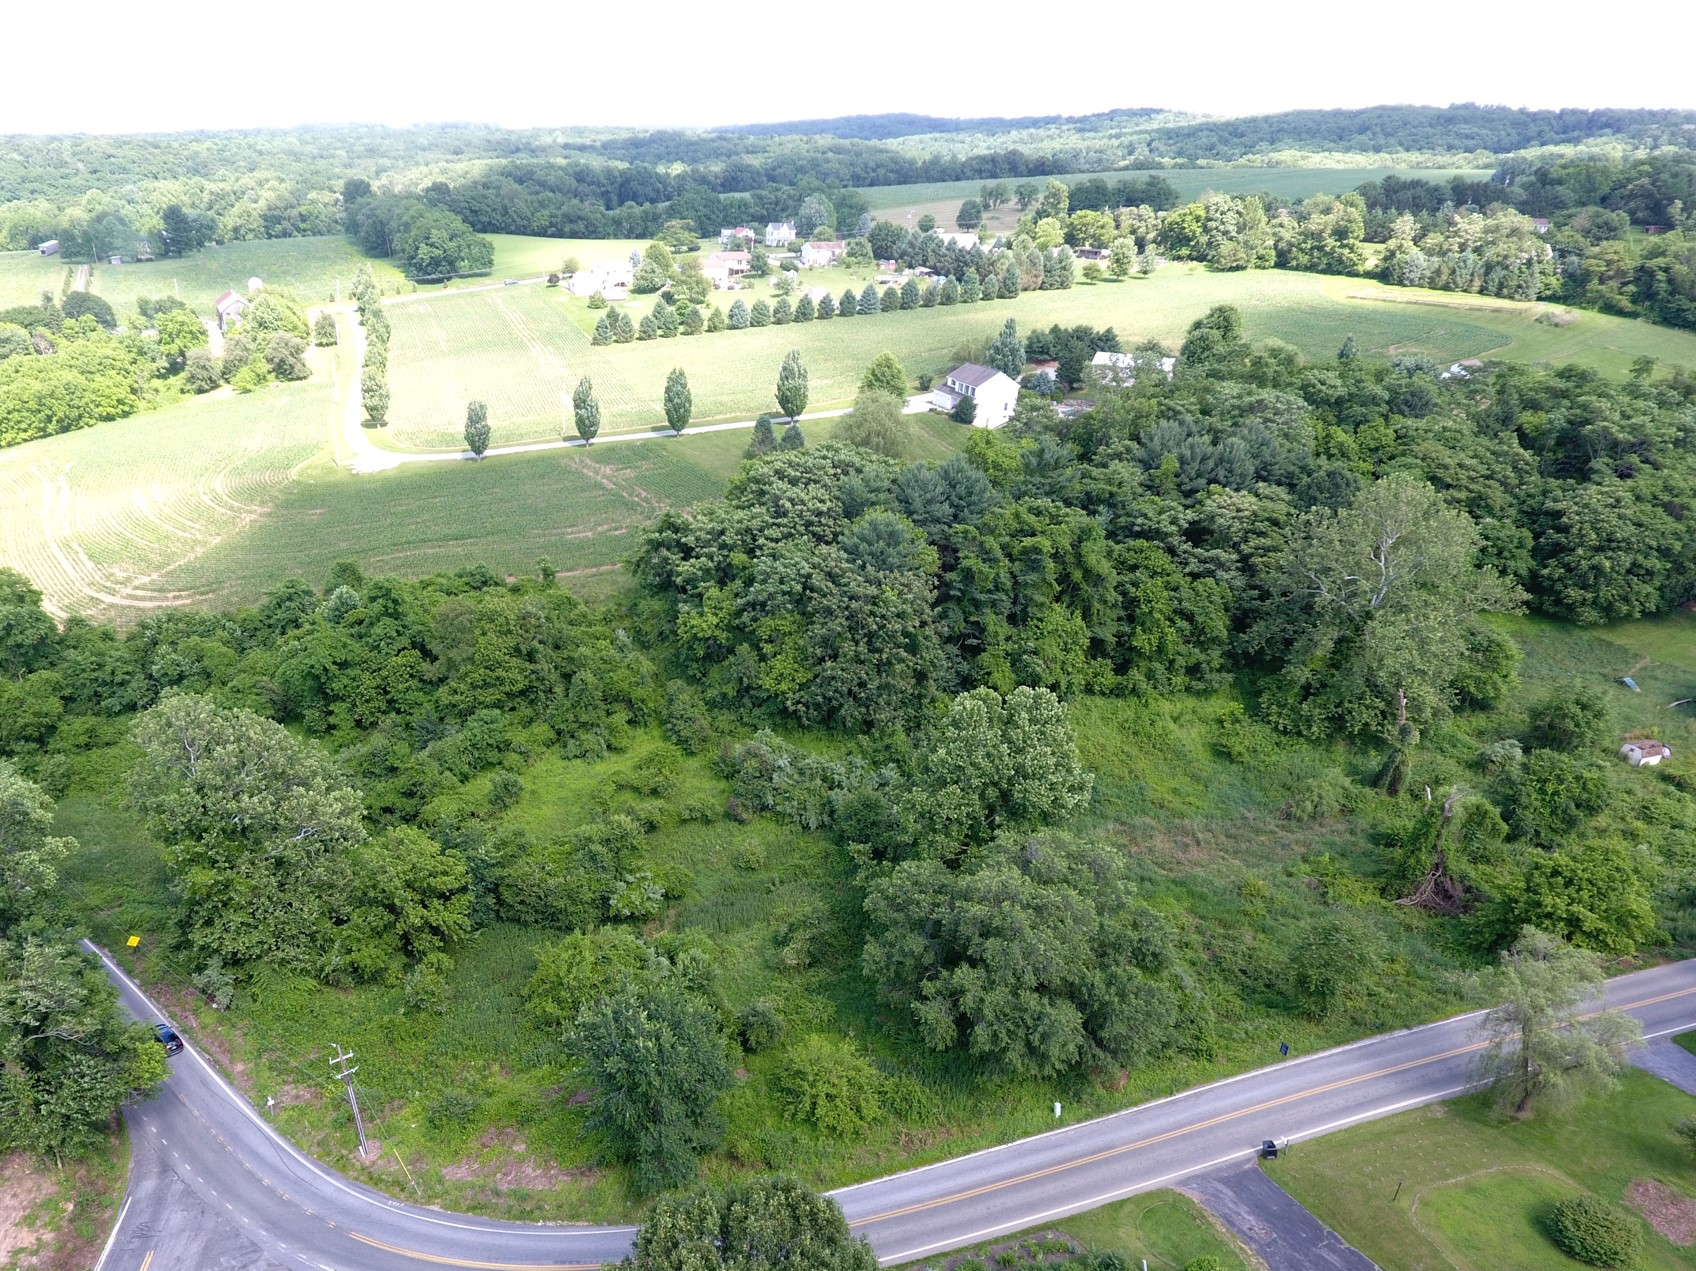 Land for Sale at River Road, Lot 13 Pequea, Pennsylvania 17565 United States